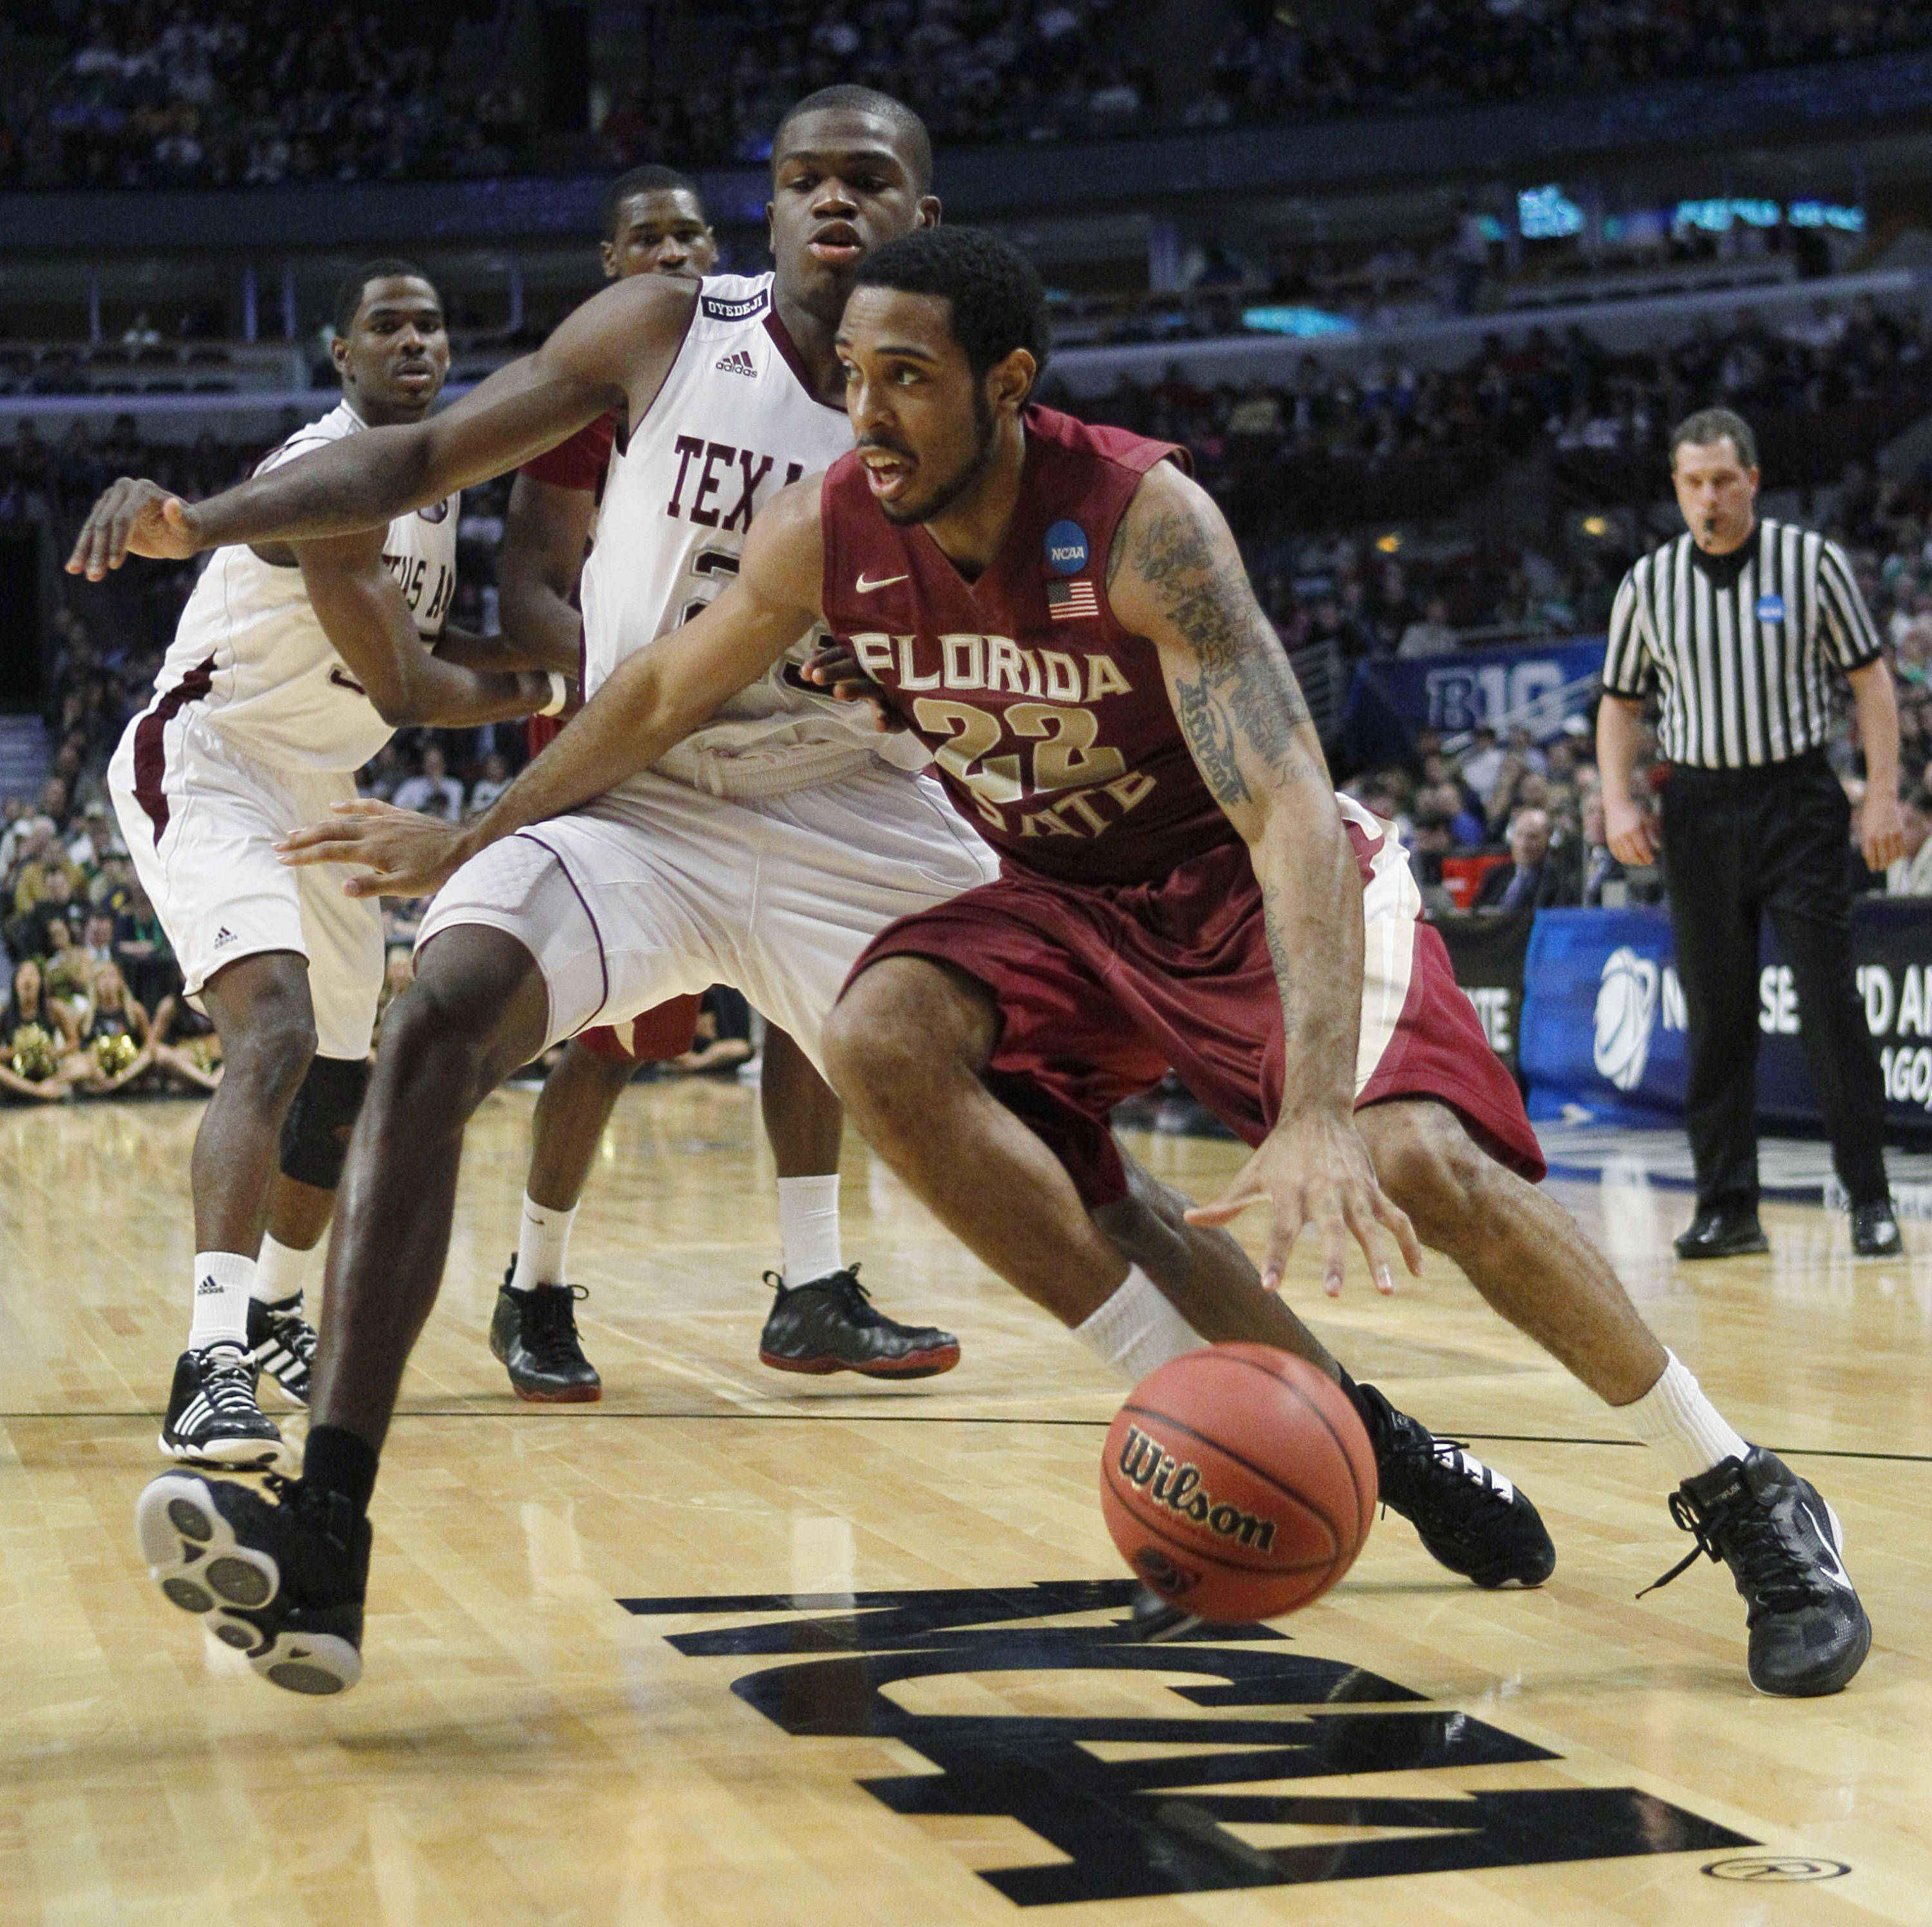 Florida State's Derwin Kitchen drives around Texas A&M's Naji Hibbert. (AP Photo/Charles Rex Arbogast)